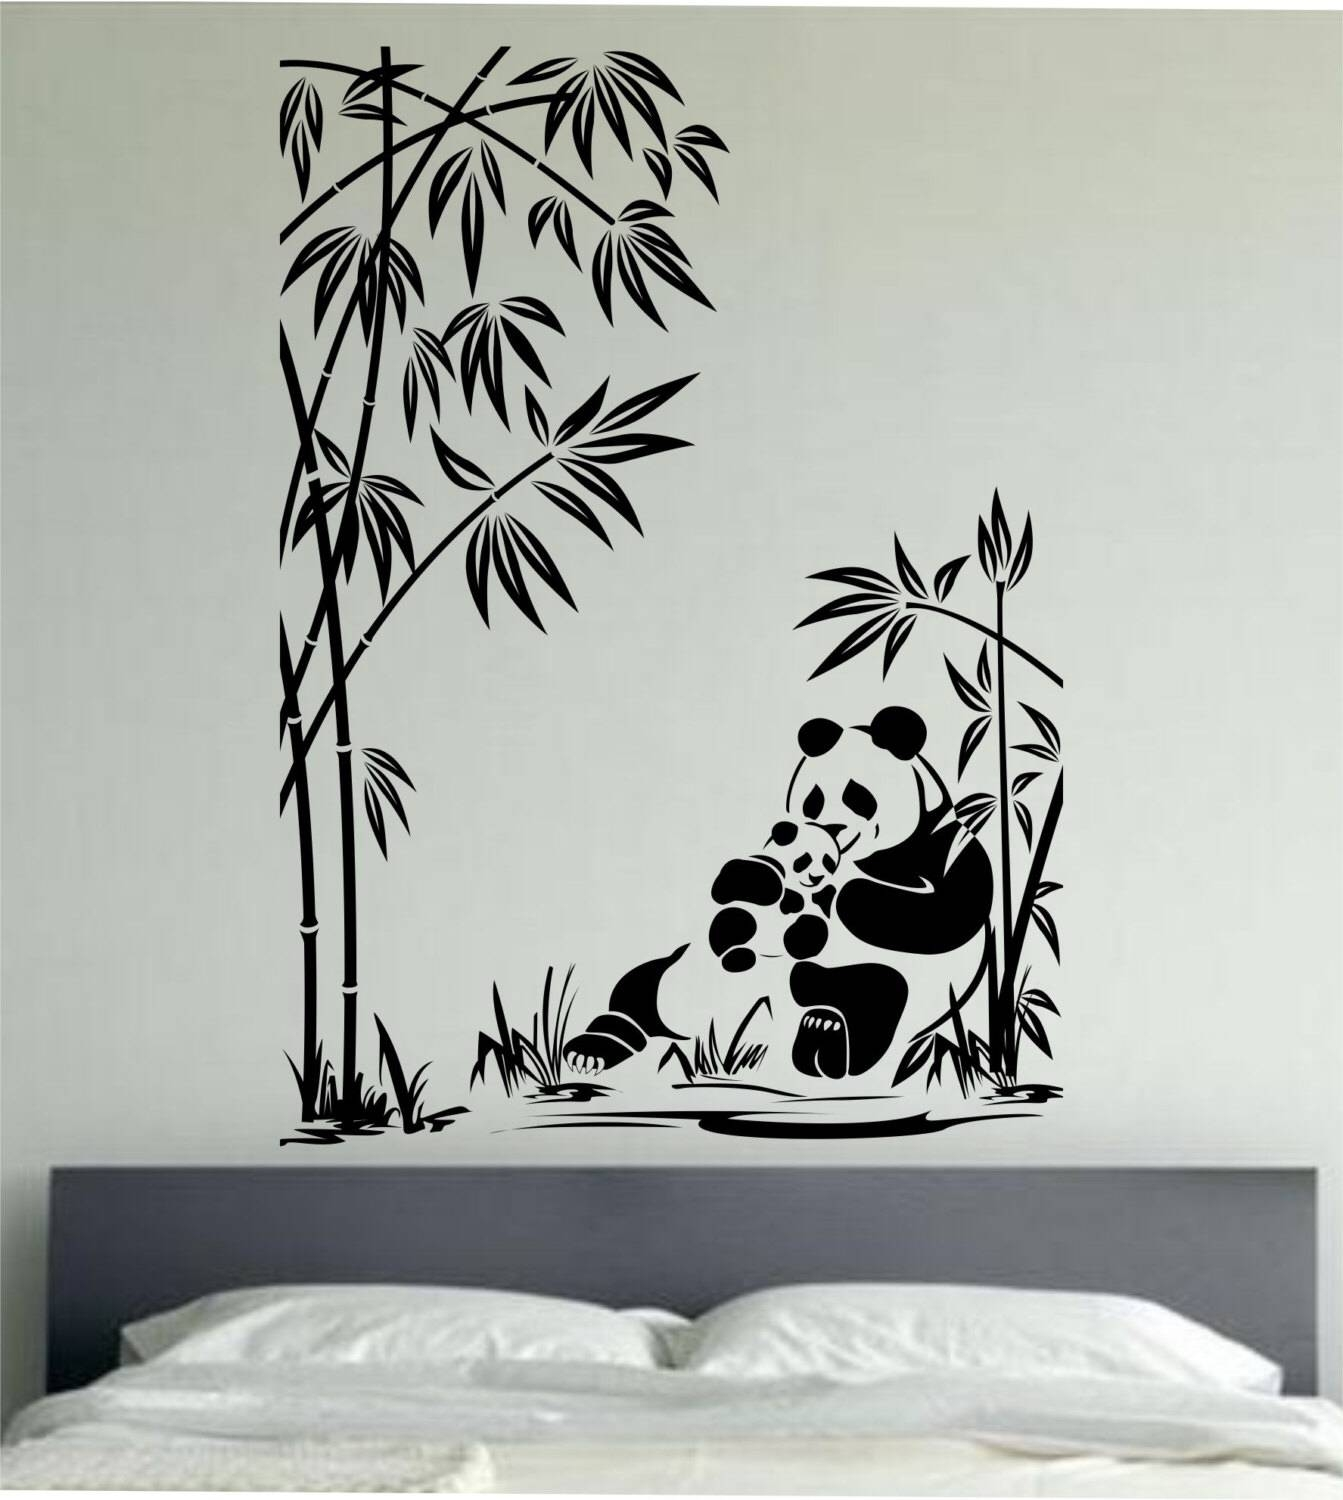 Wall Decor: Wall Decal Art Photo. Wall Art Stickers Decor (View 19 of 20)